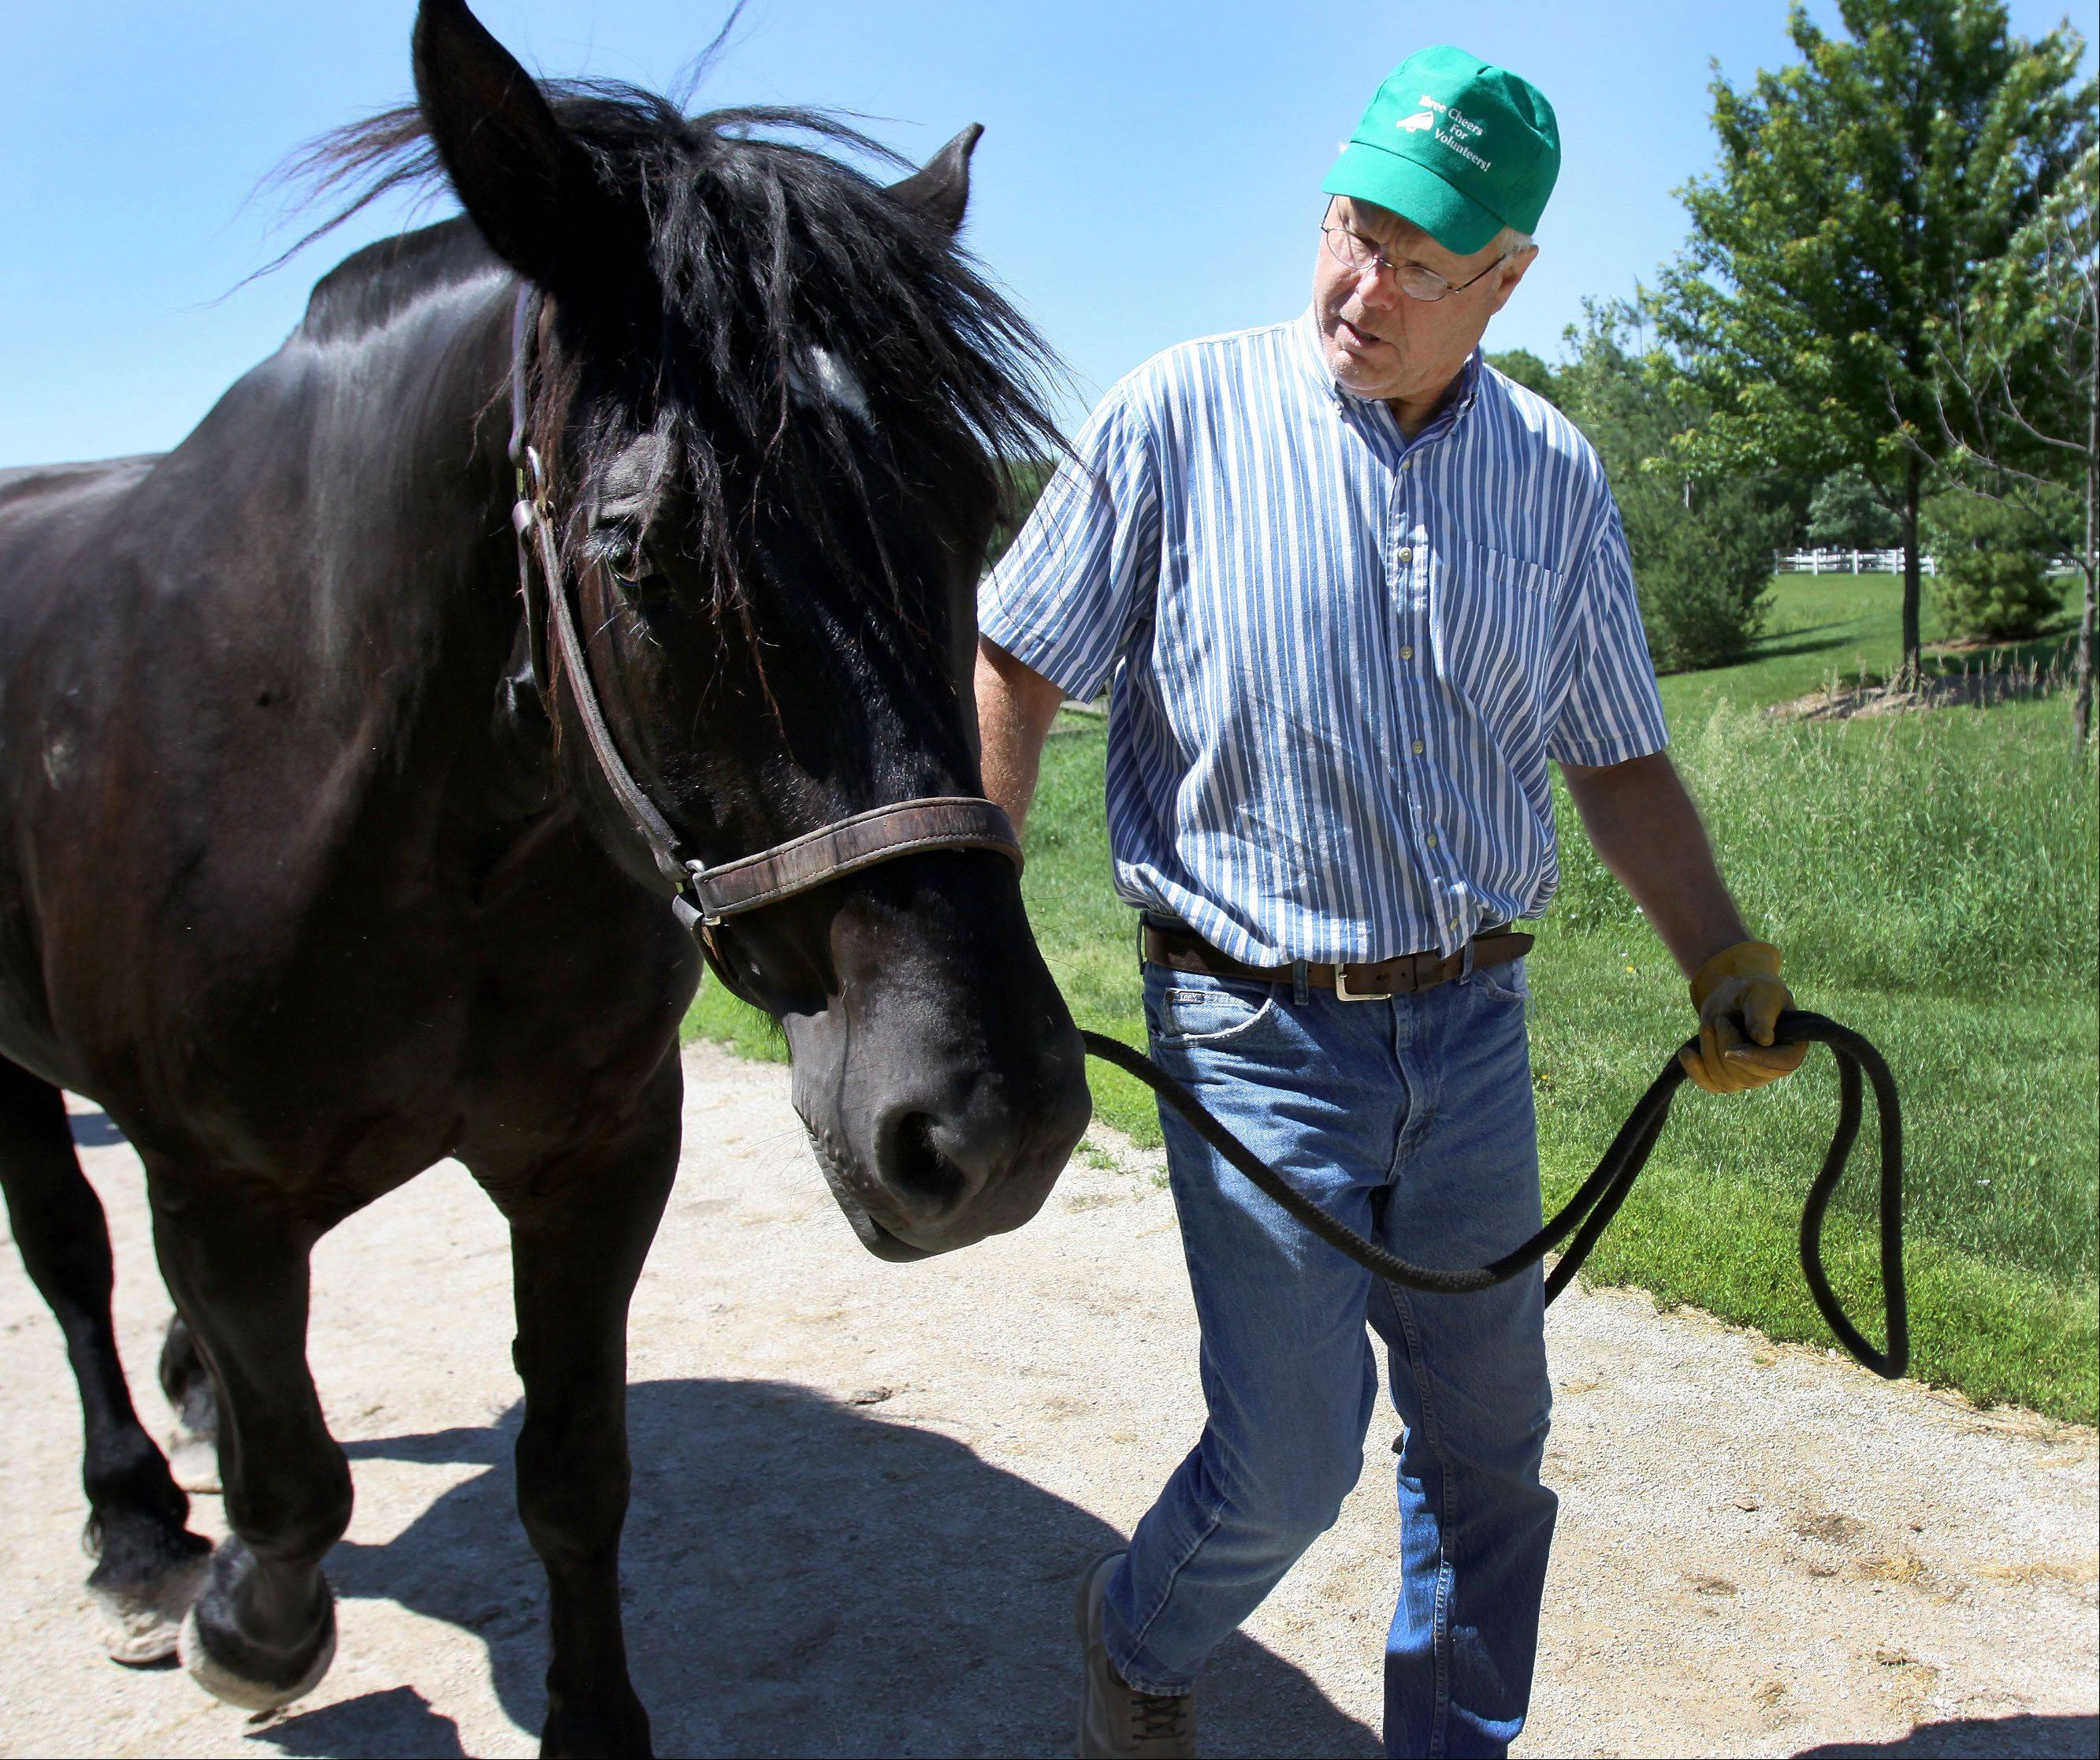 Ron Steele of Naperville, a volunteer at Danada Equestrian Center in Wheaton, walks Ike, one of the horses at the center, to the barn Thursday. A recent investigation of the center found no signs of abuse or neglect of the horses.